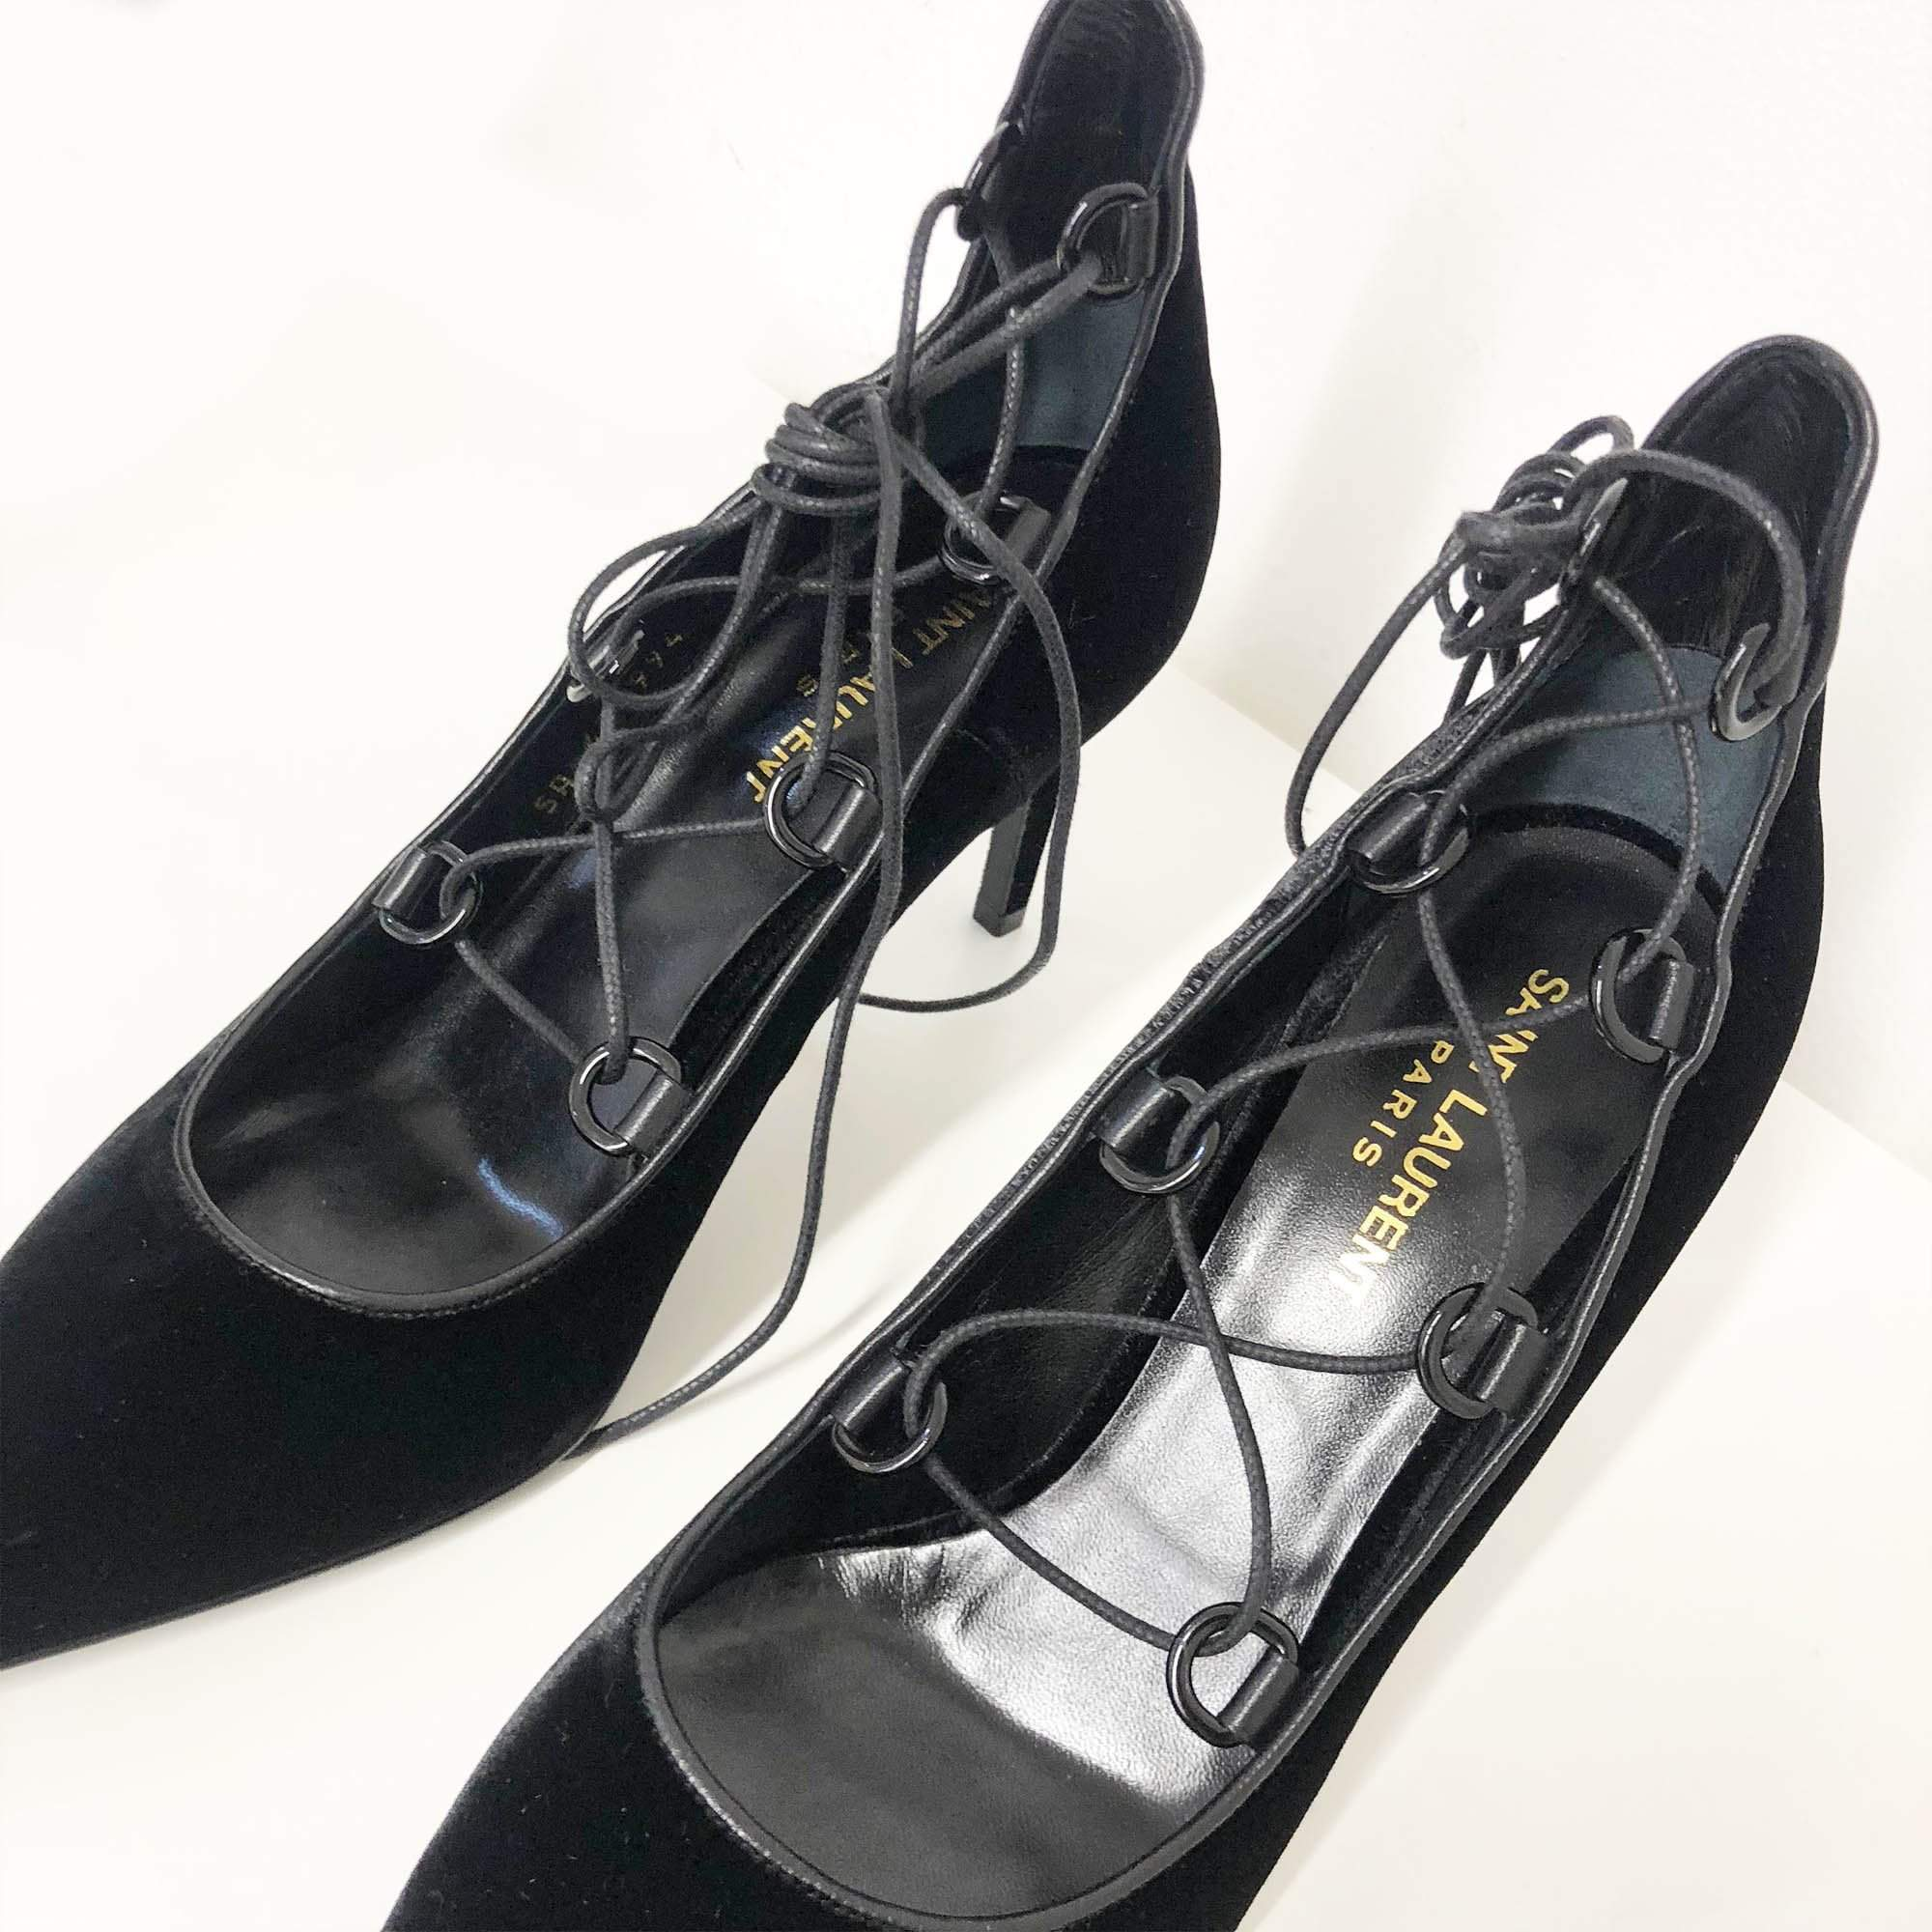 Saint Laurent Velvet Lace-up Pumps